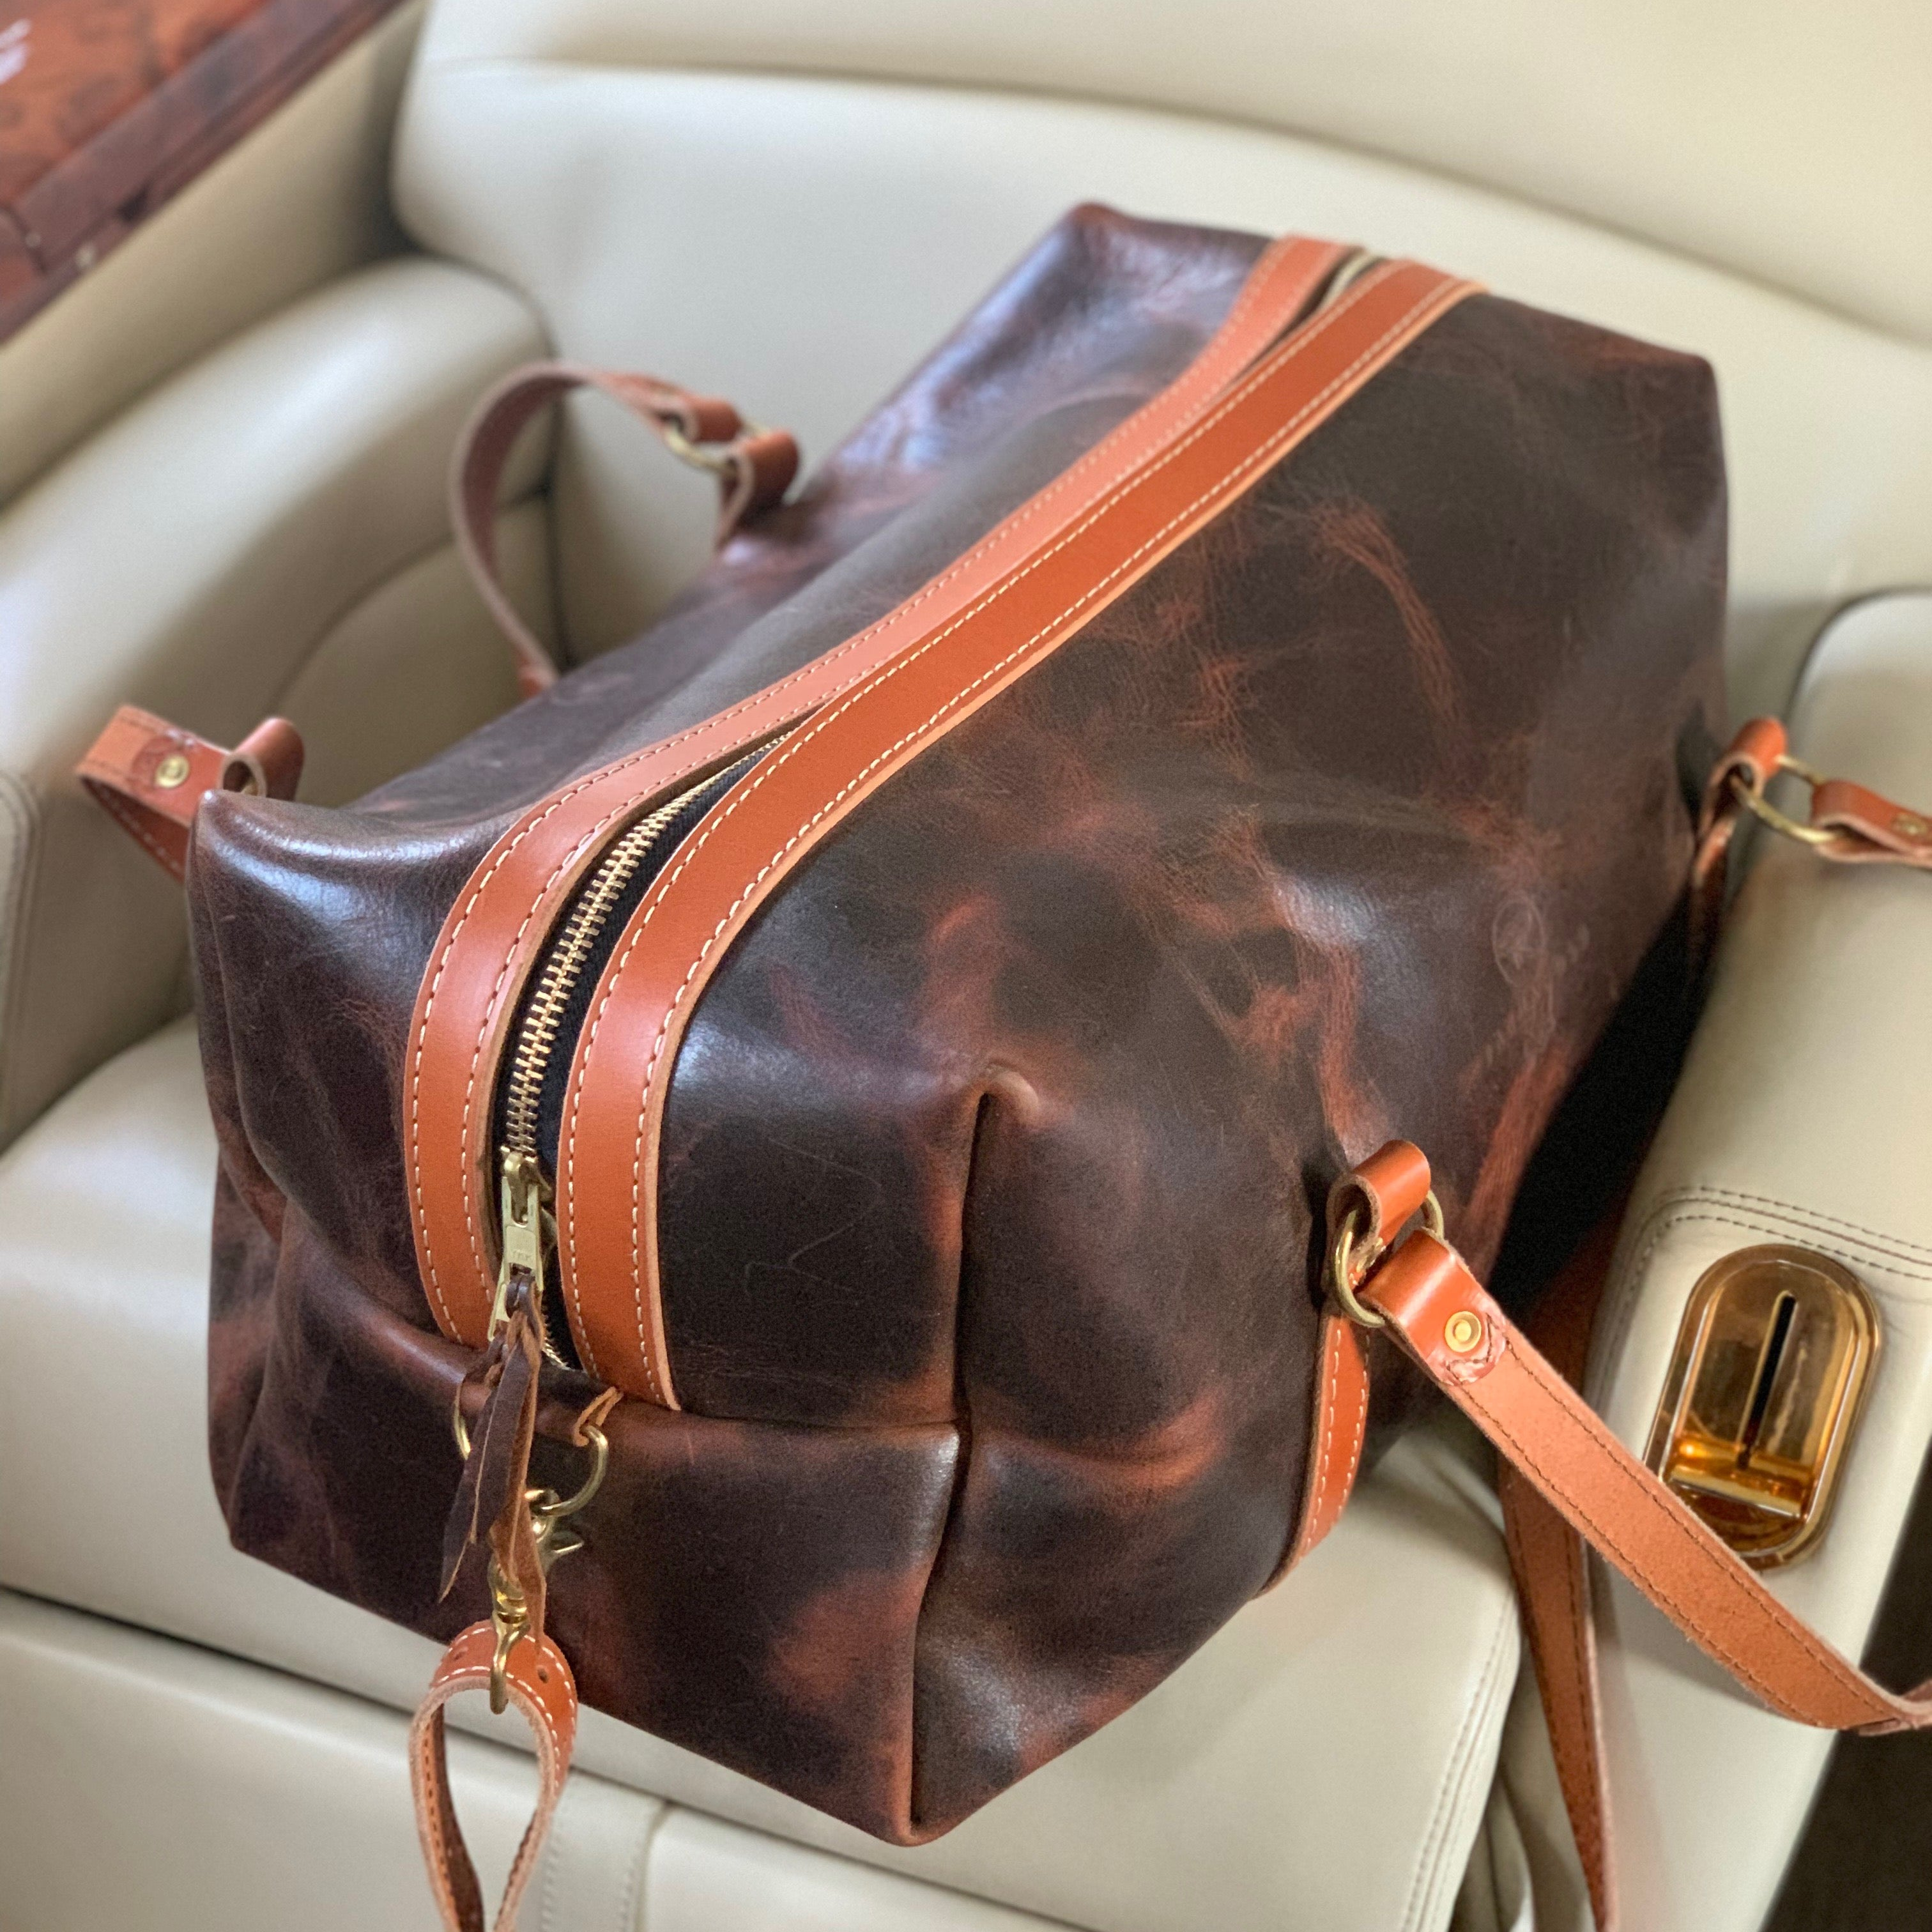 Panhandle Red Company specializing in Leather Goods, Handbags, Totes, Purses, Everyday Carry Needs, and more. Full-grain leather items, custom gifts, all Handcrafted in Idaho, USA.